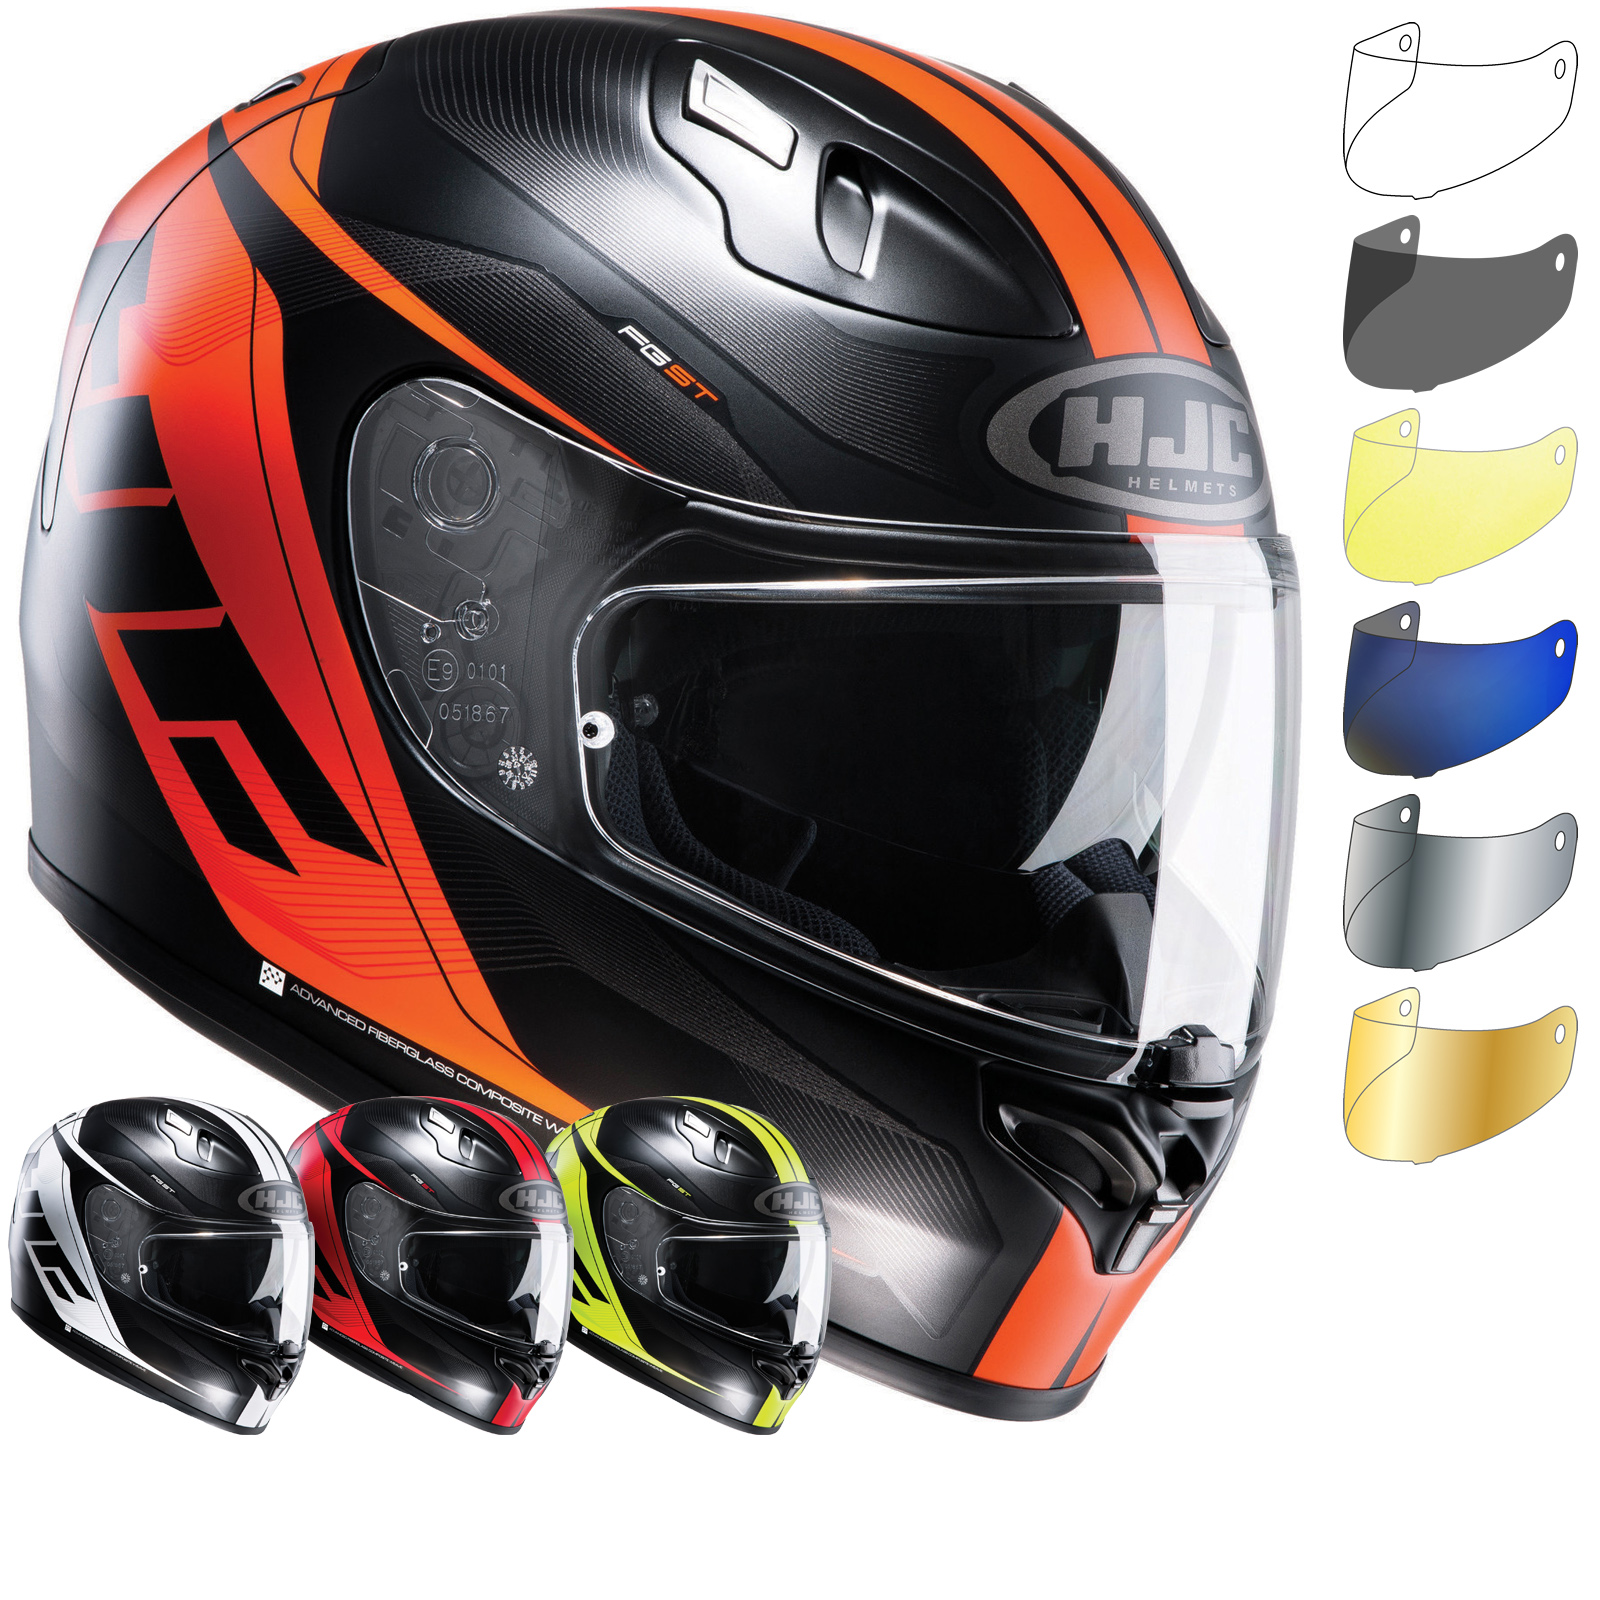 hjc fg st crono motorcycle helmet visor full face helmets. Black Bedroom Furniture Sets. Home Design Ideas